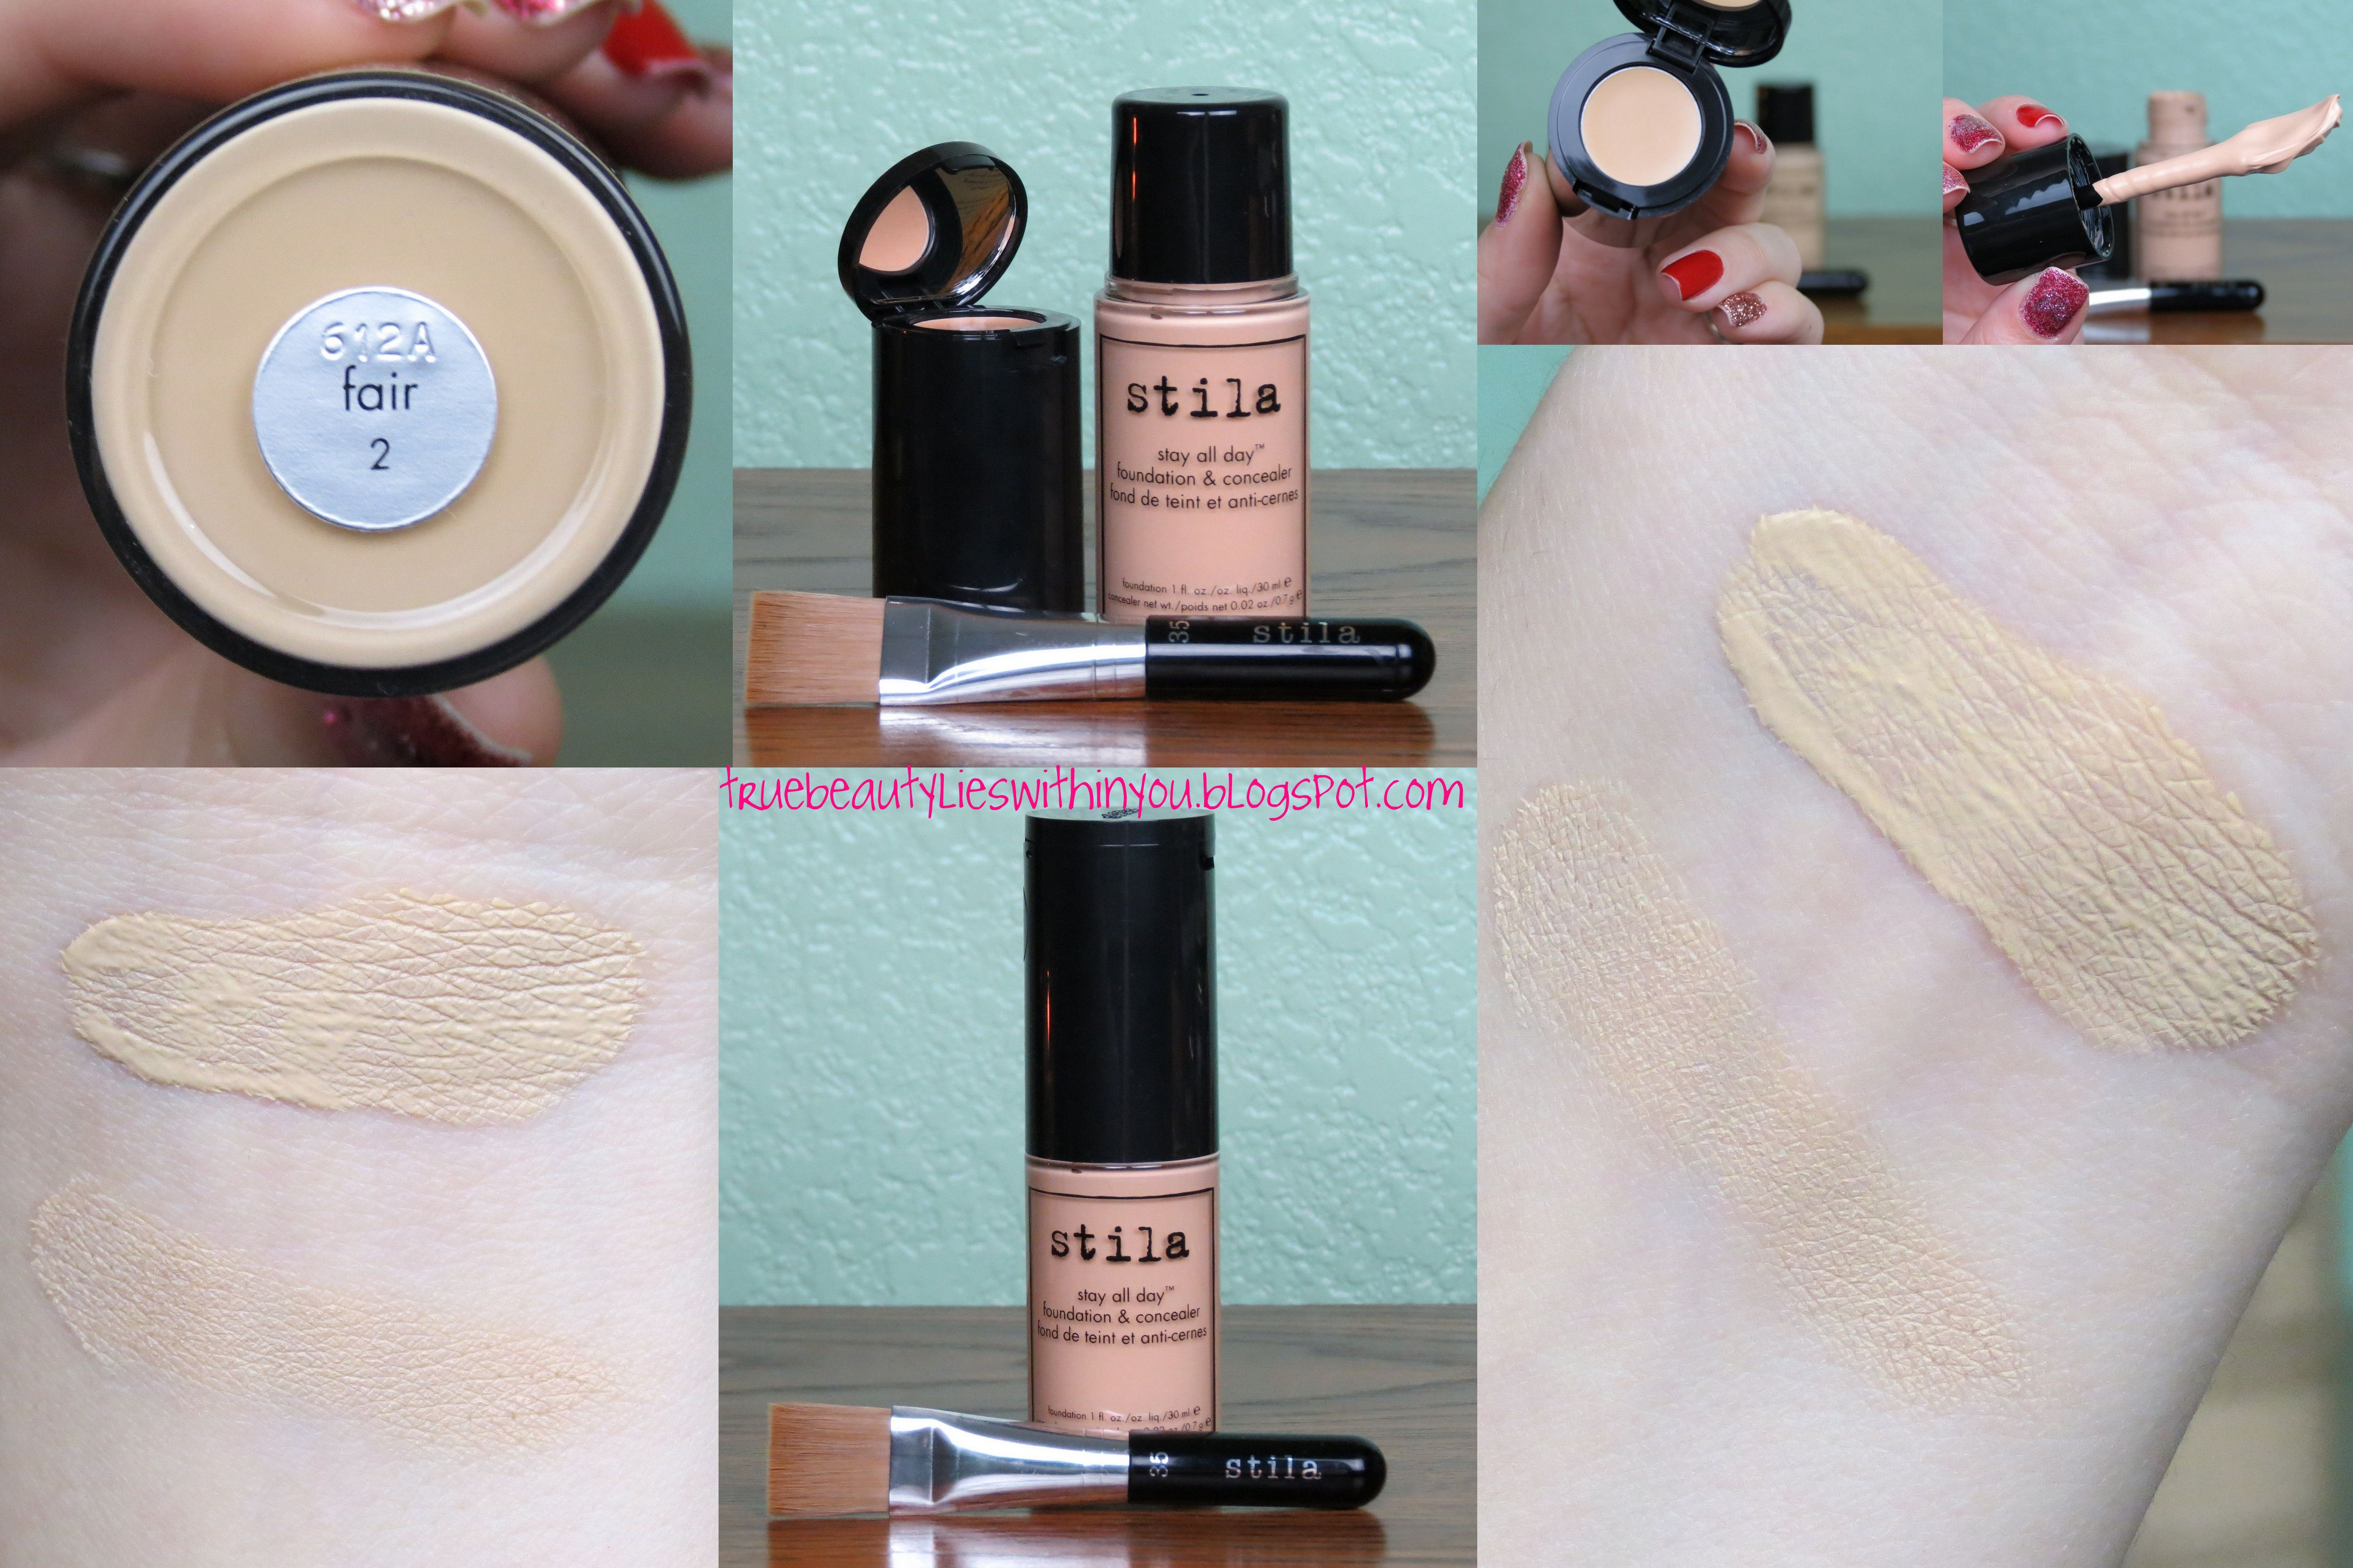 Stila Stay All Day Foundation & Concealer in 2 Fair | Beauty ...